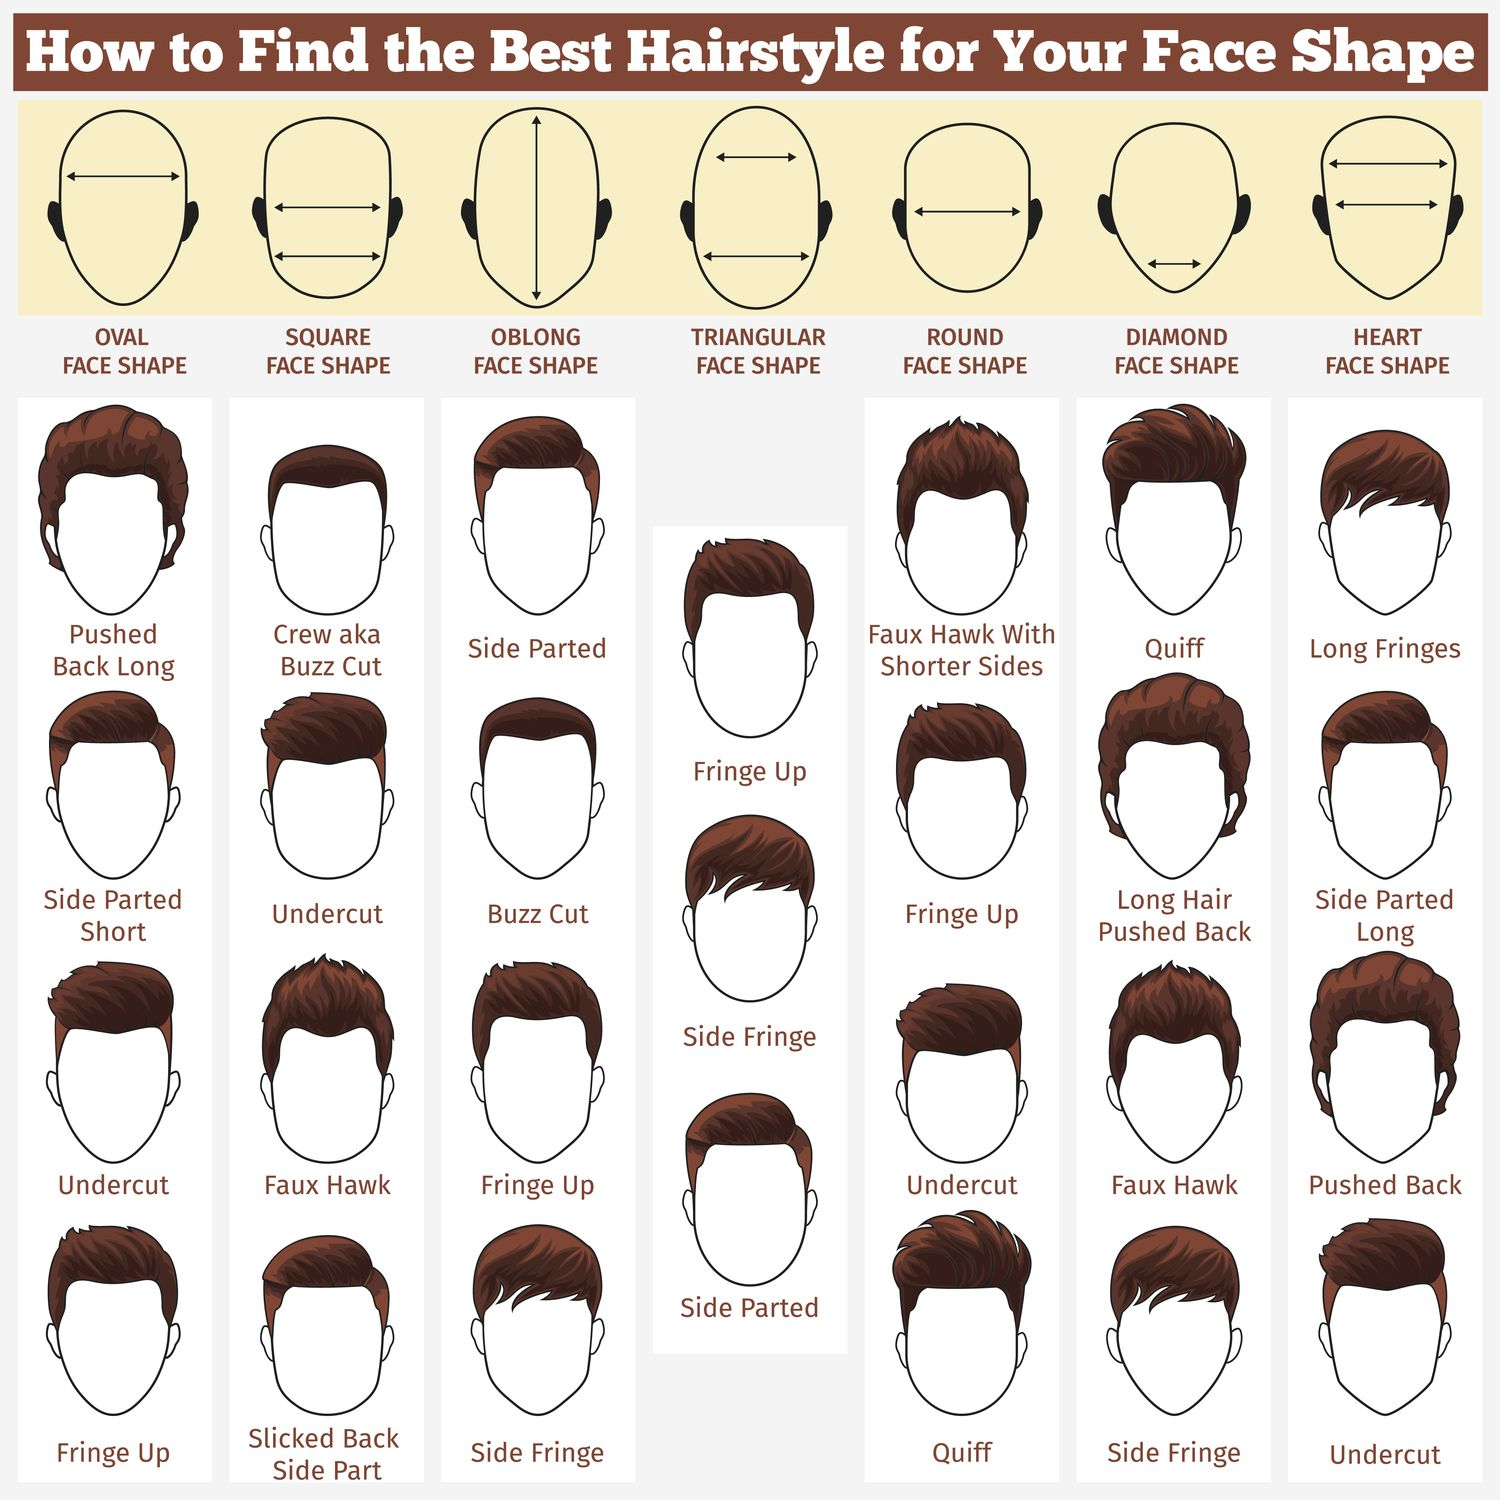 40 hairstyles for thick hair men's | hair styles | curly